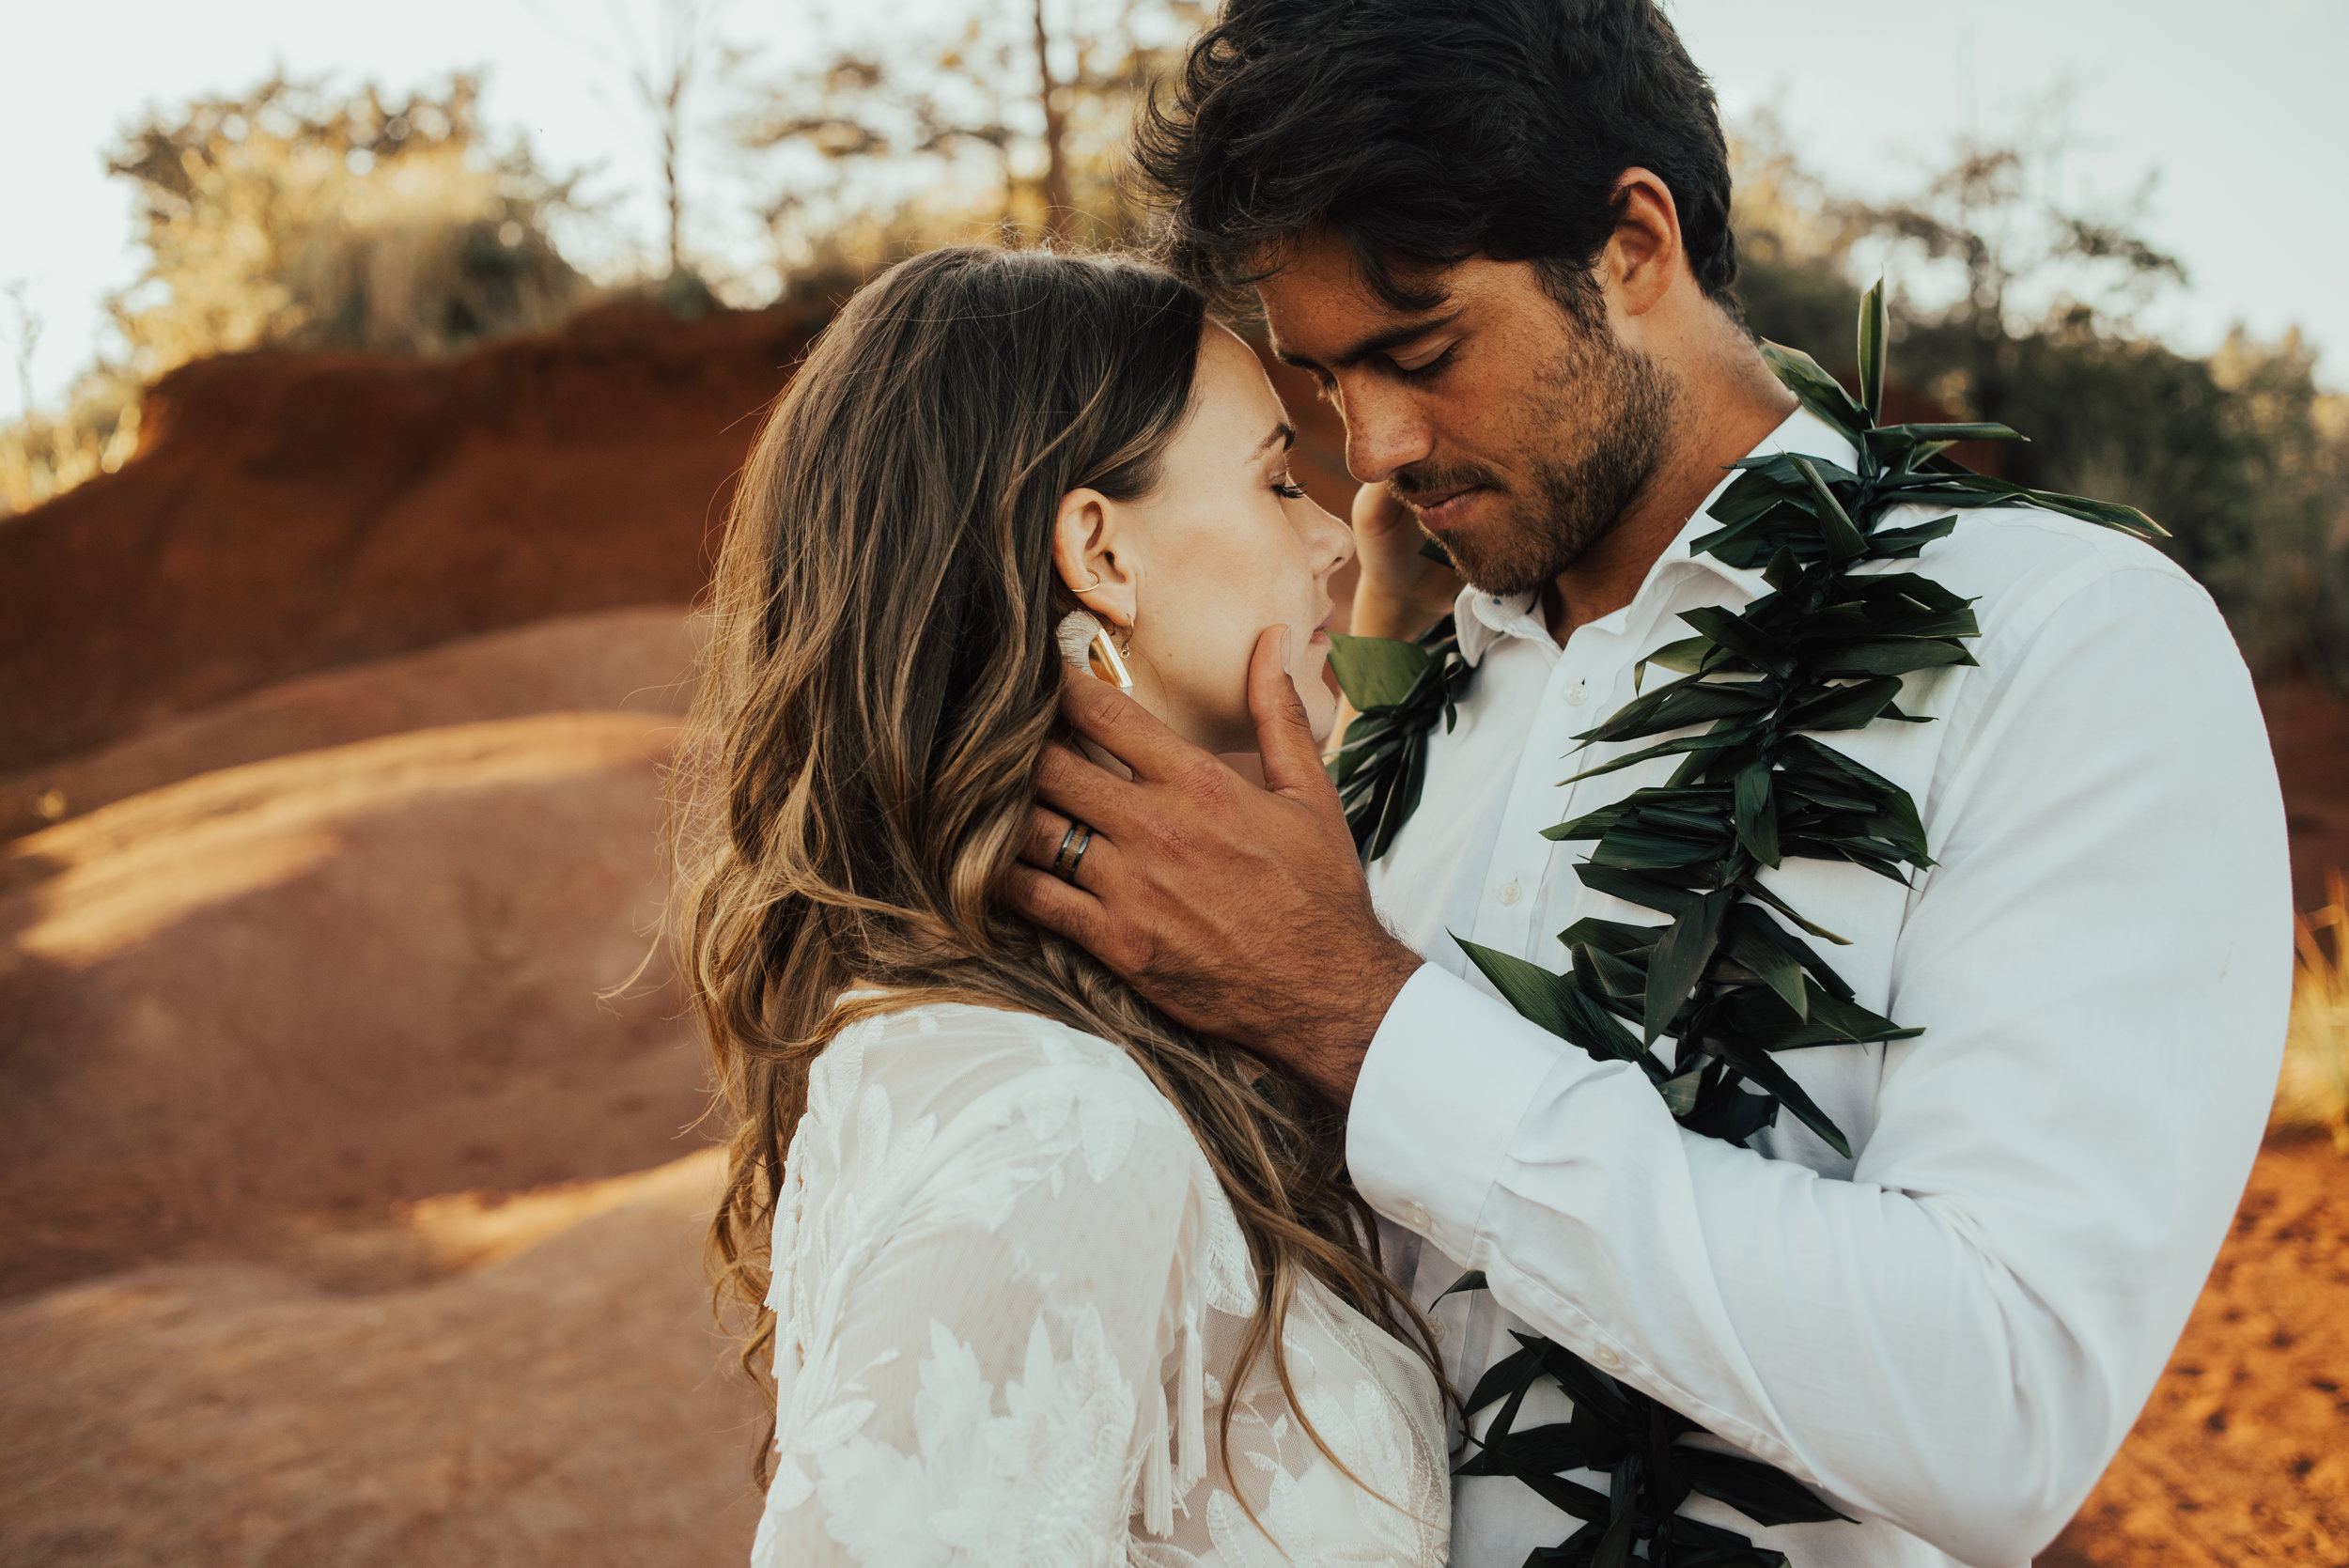 Waimea Canyon Elopement by SB Photographs01101001000111001110110110100100100001101001DSC_6032DSC_60320001101.jpg